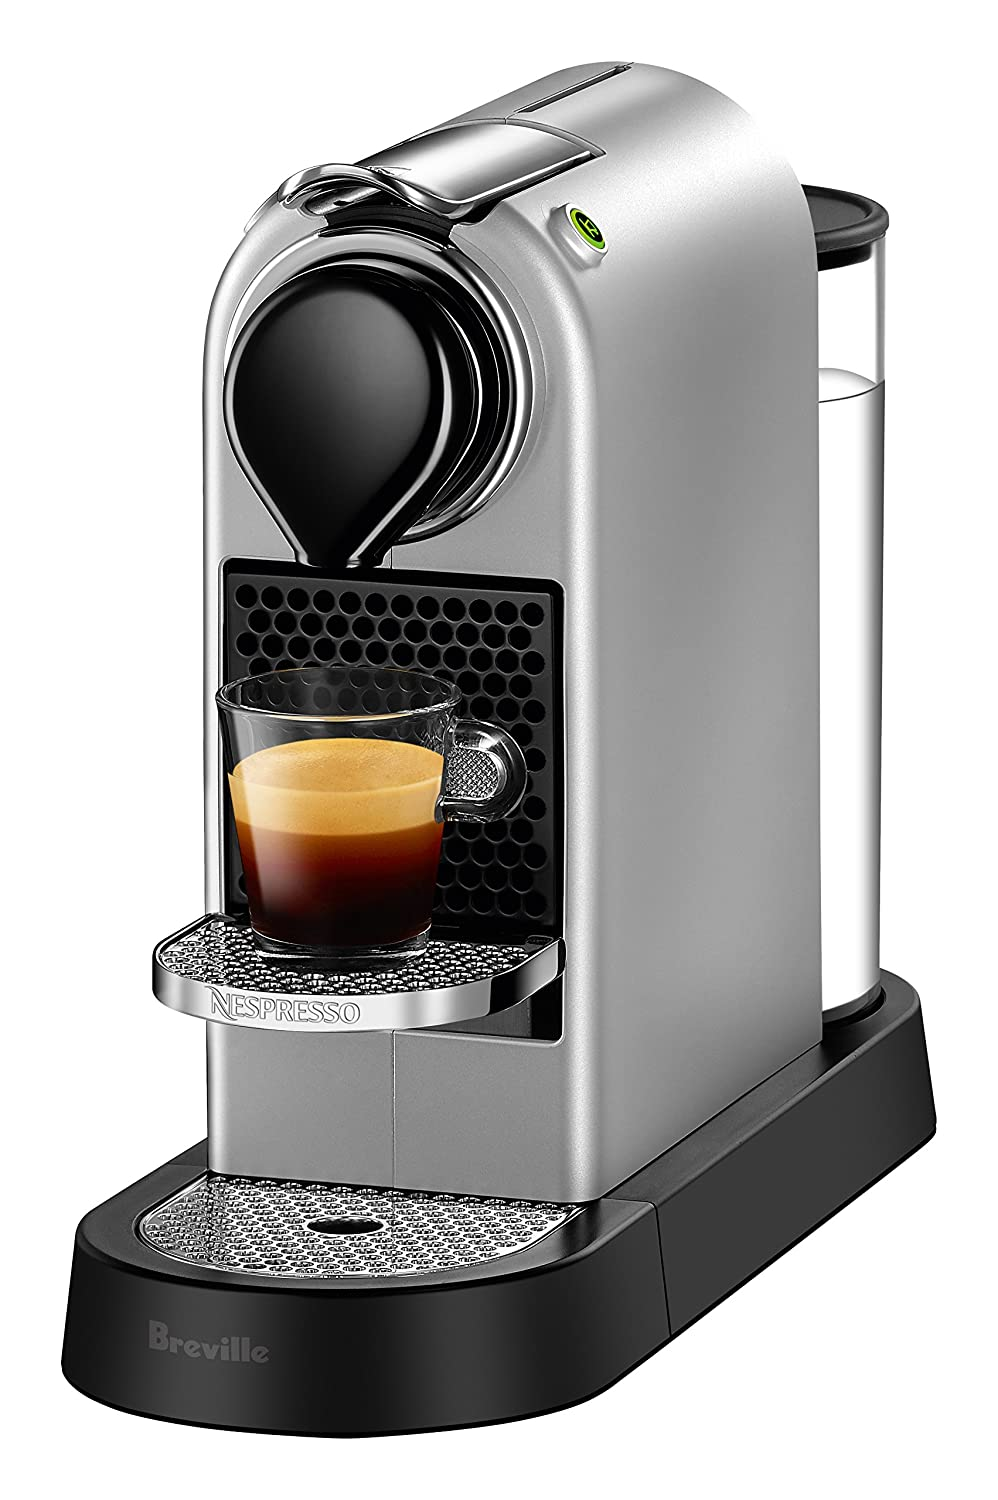 Click image to open expanded view Nespresso CitiZ Espresso Machine by